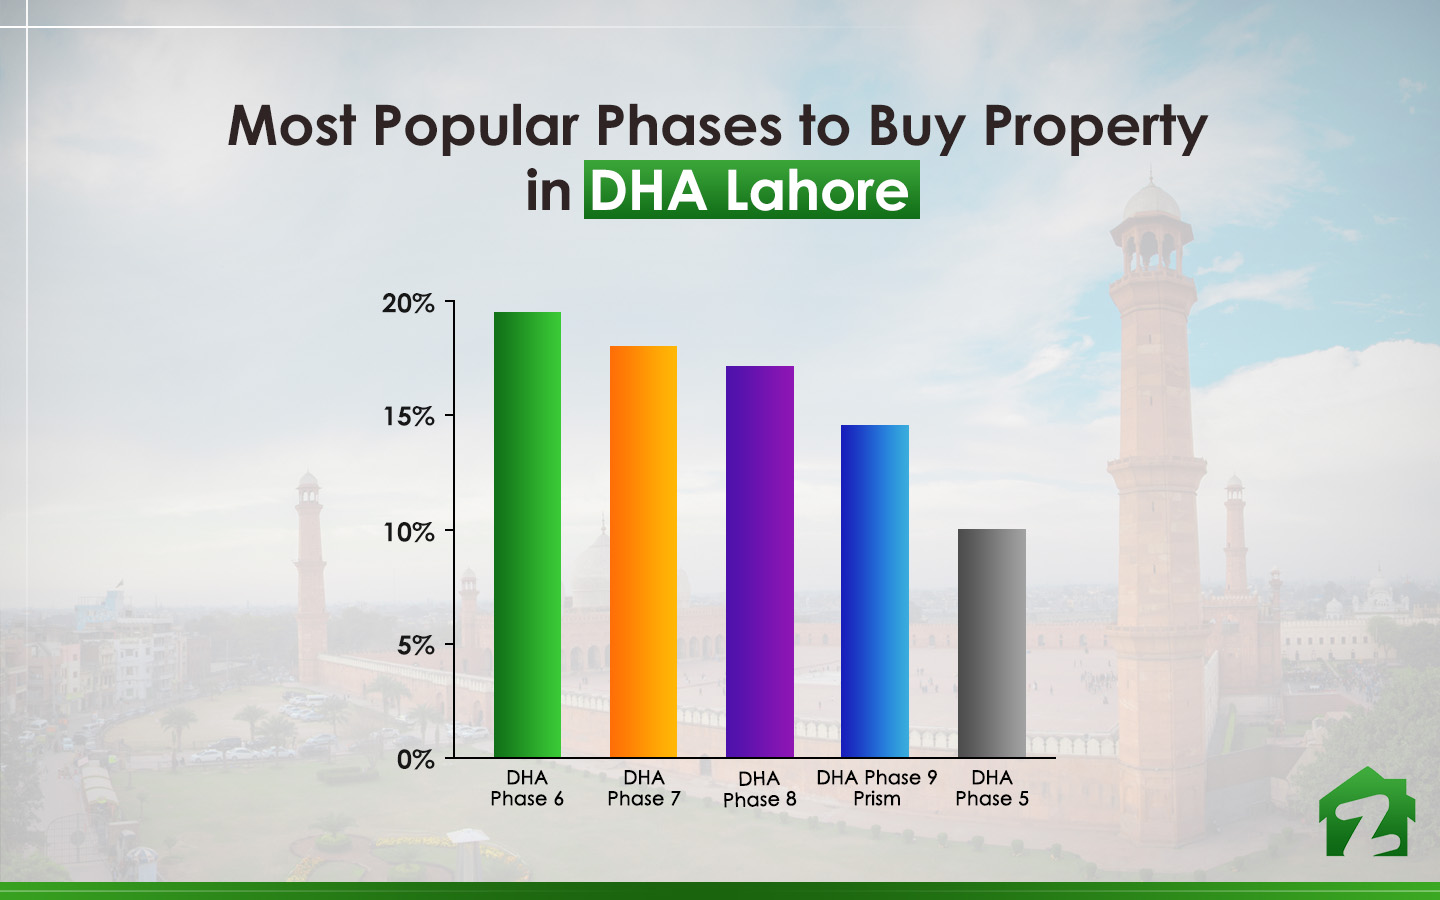 famous phases to buy property in DHA Lahore